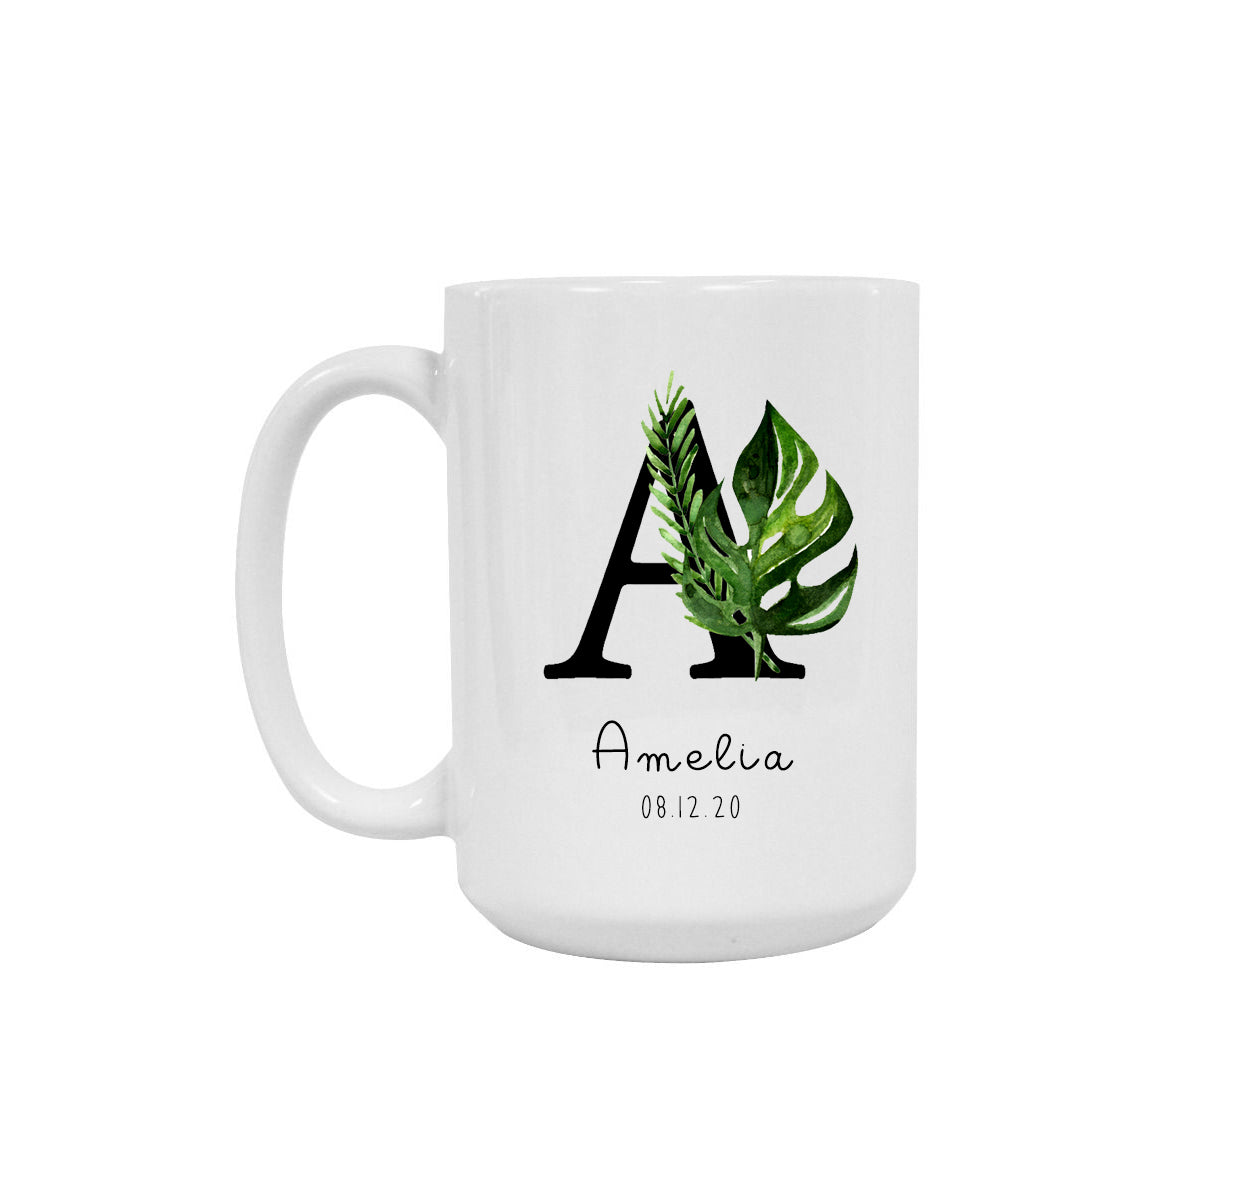 Botanical monogram ceramic mug